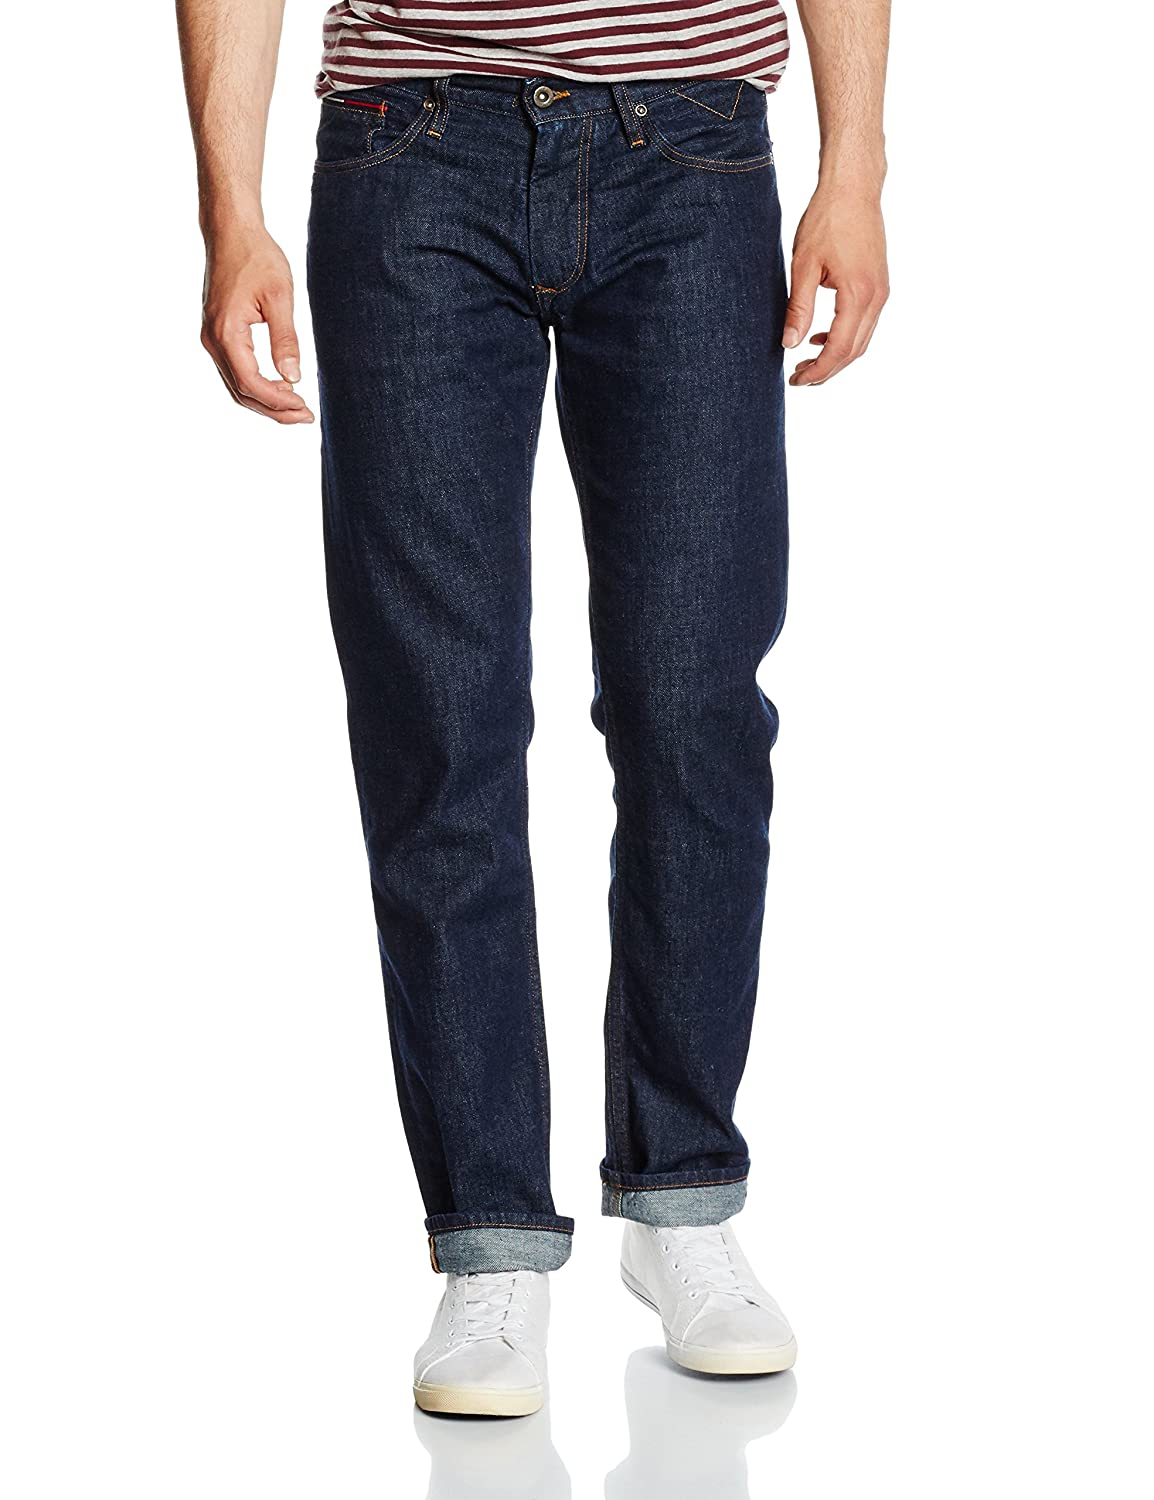 Hilfiger Denim Herren Jeanshose Original Straight Ryan Rid